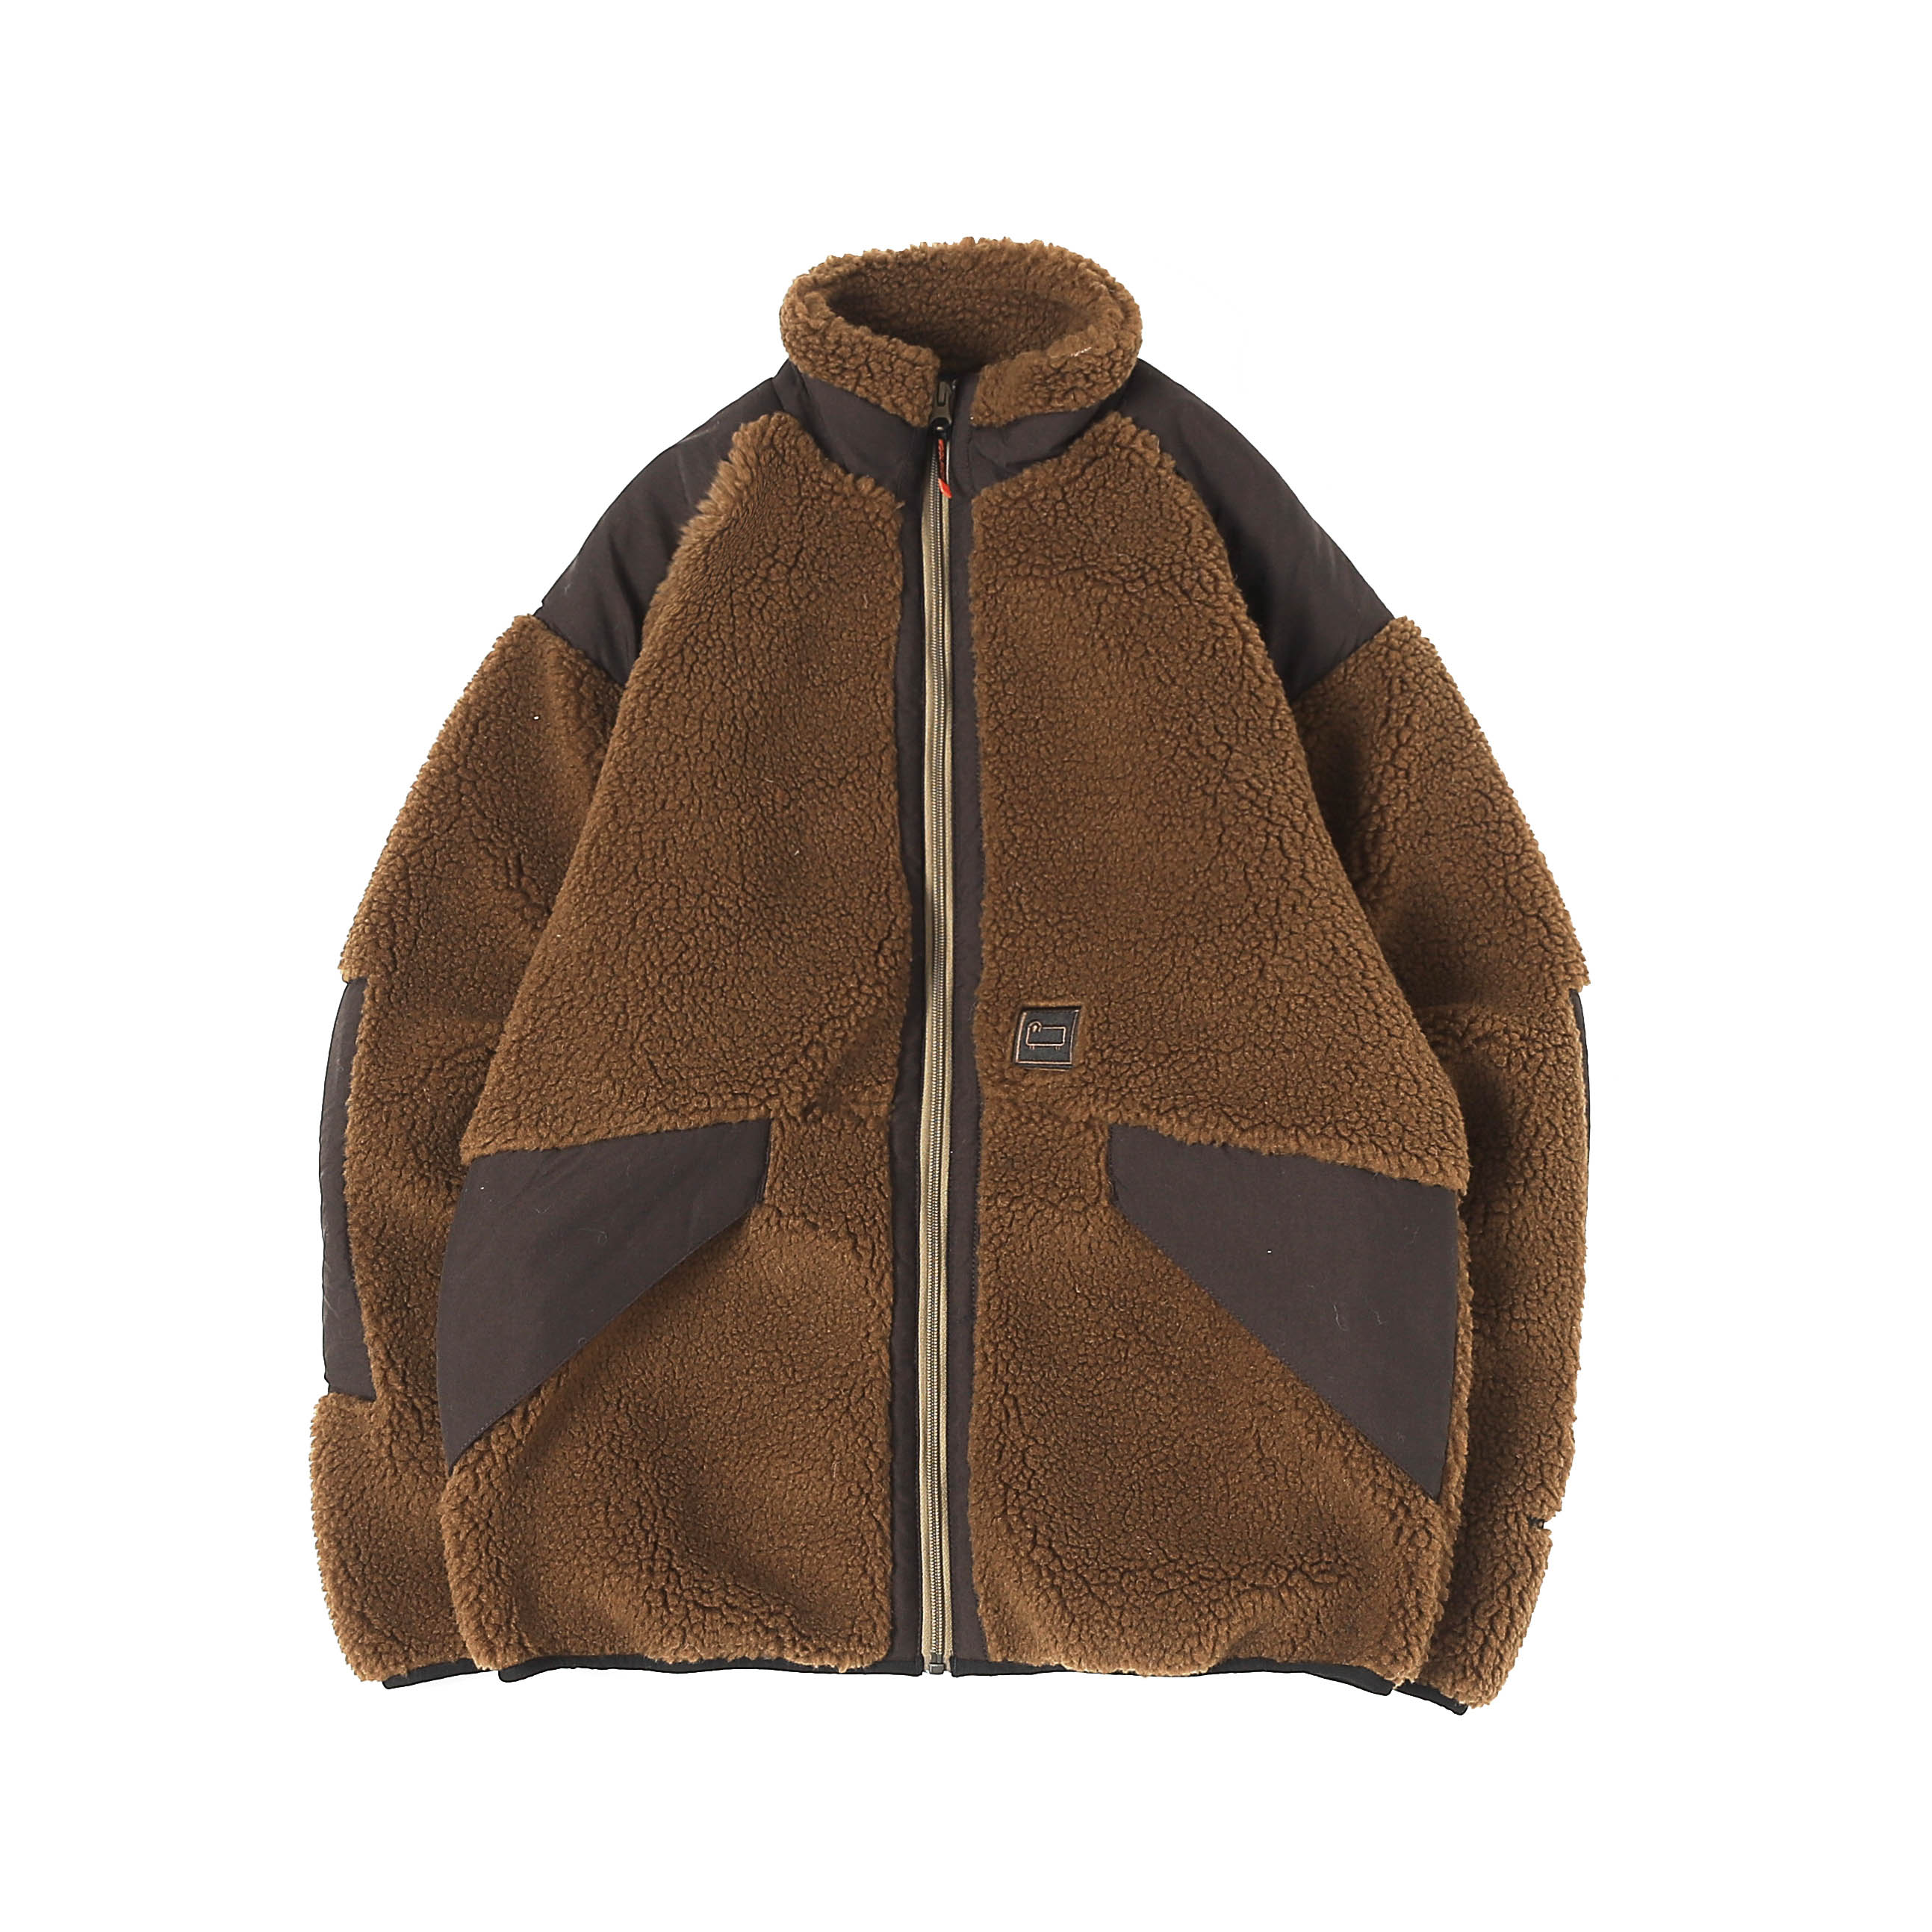 TERRA PILE FLEECE JACKET - BROWN